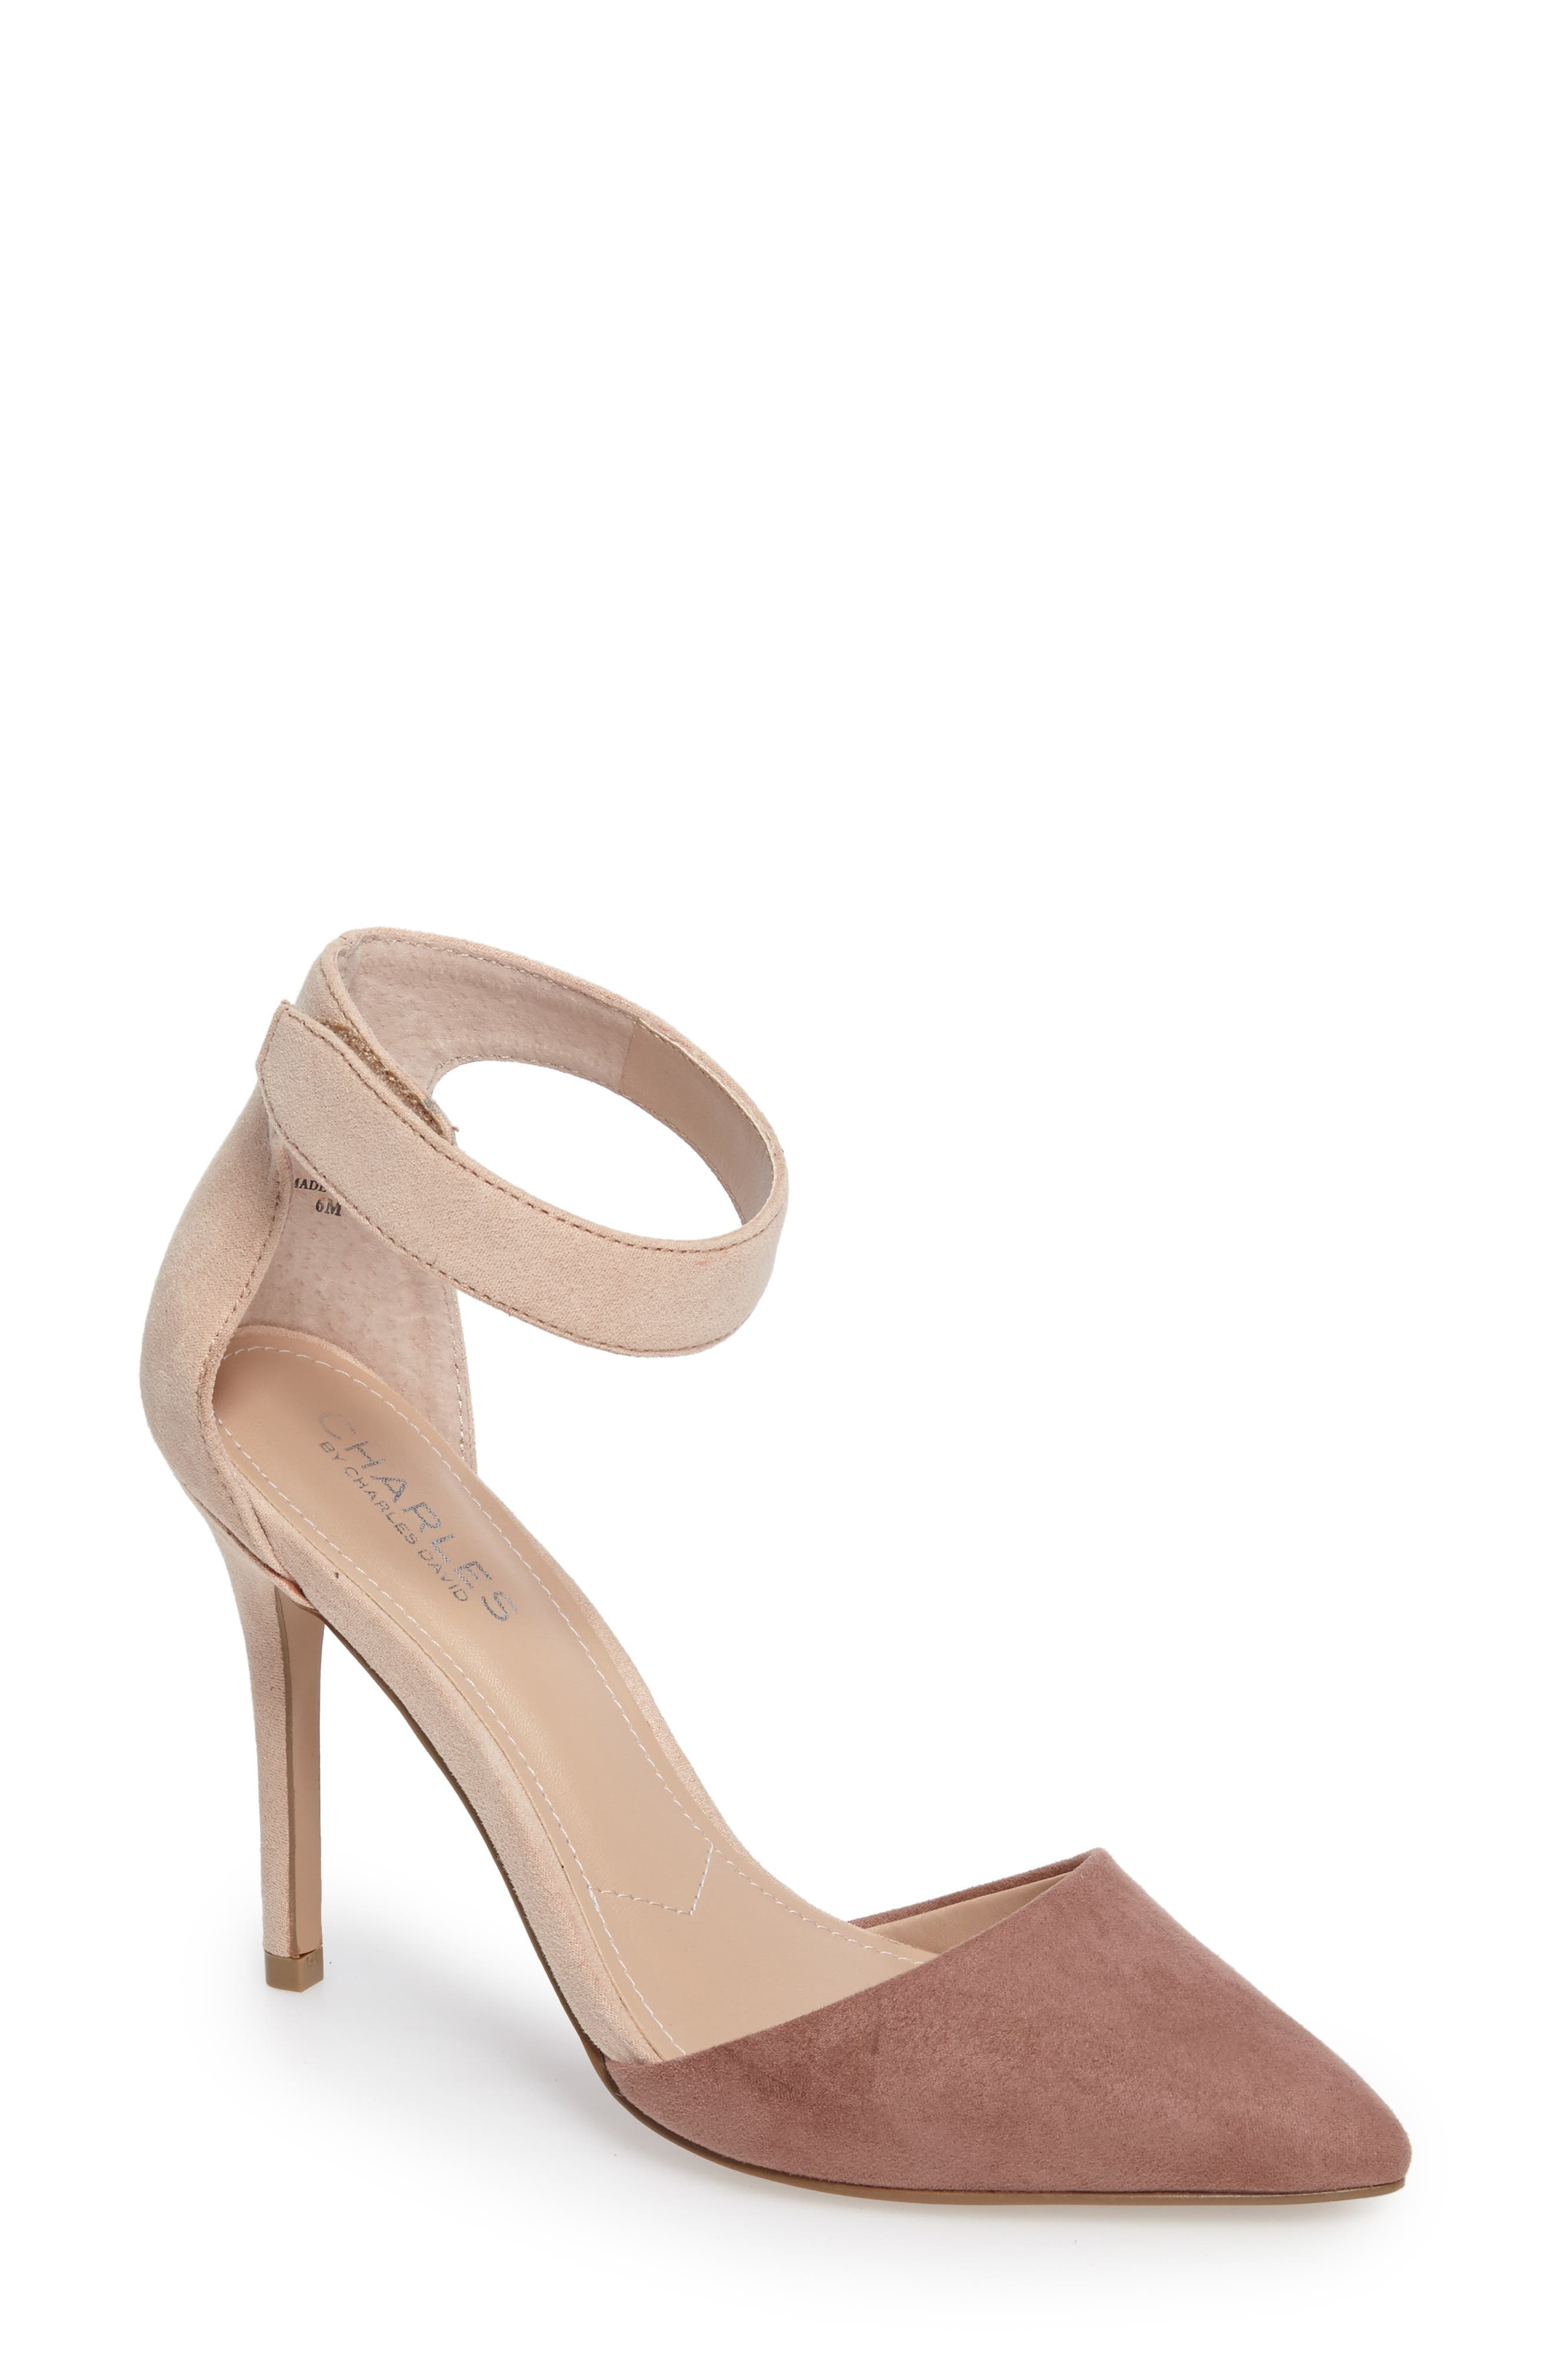 Charles by Charles David Pointer Pump (Women)